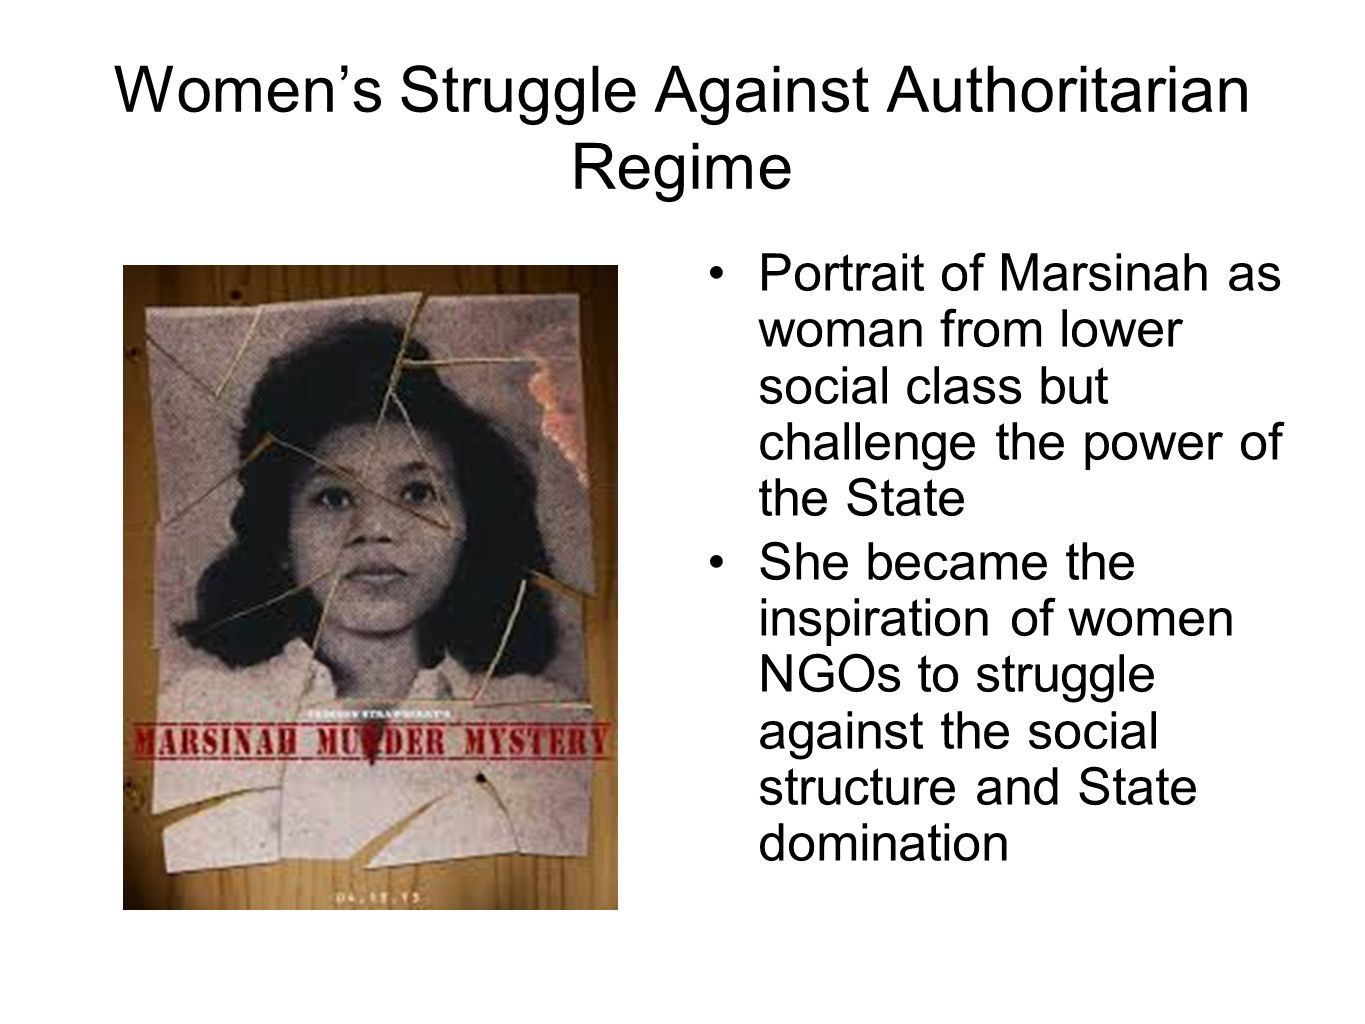 Women's Struggle Against Authoritarian Regime Portrait of Marsinah as woman from lower social class but challenge the power of the State She became the inspiration of women NGOs to struggle against the social structure and State domination